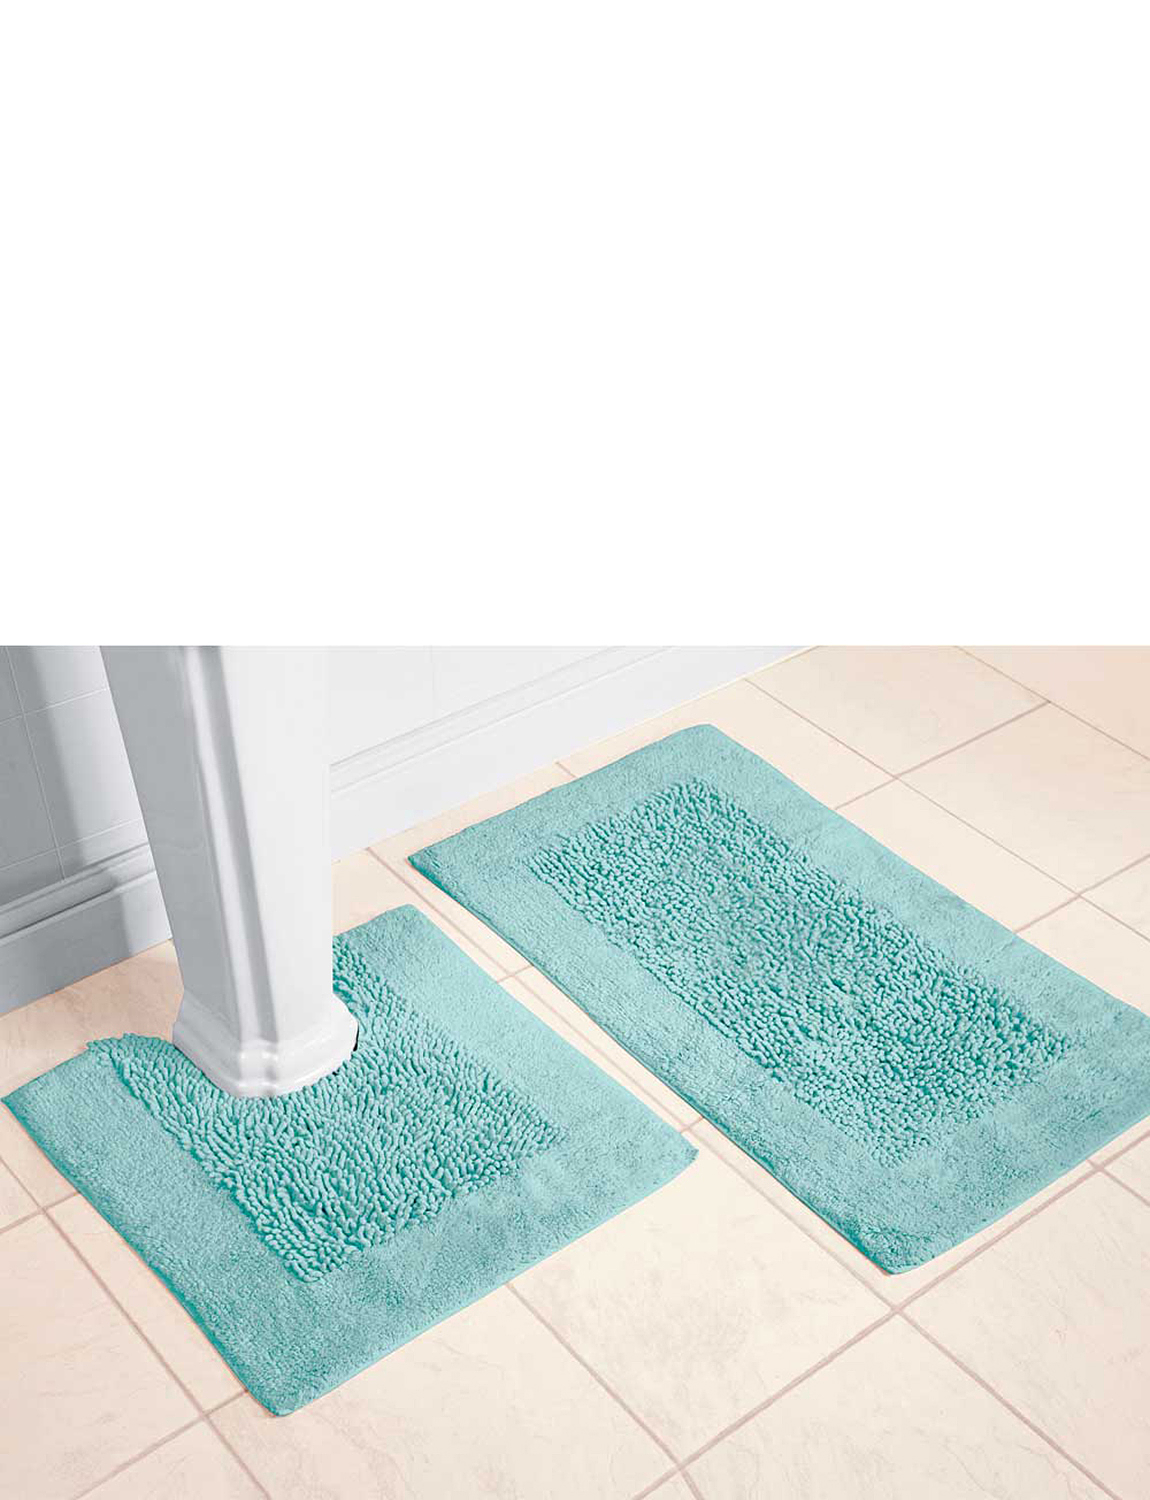 Perfect Fern Bath Rug Is Sculpted With An Allover Fern Design In Either White Or Ivory Fern Bath Rug Is Sculpted With An Allover Fern Design In Either White Or Ivory